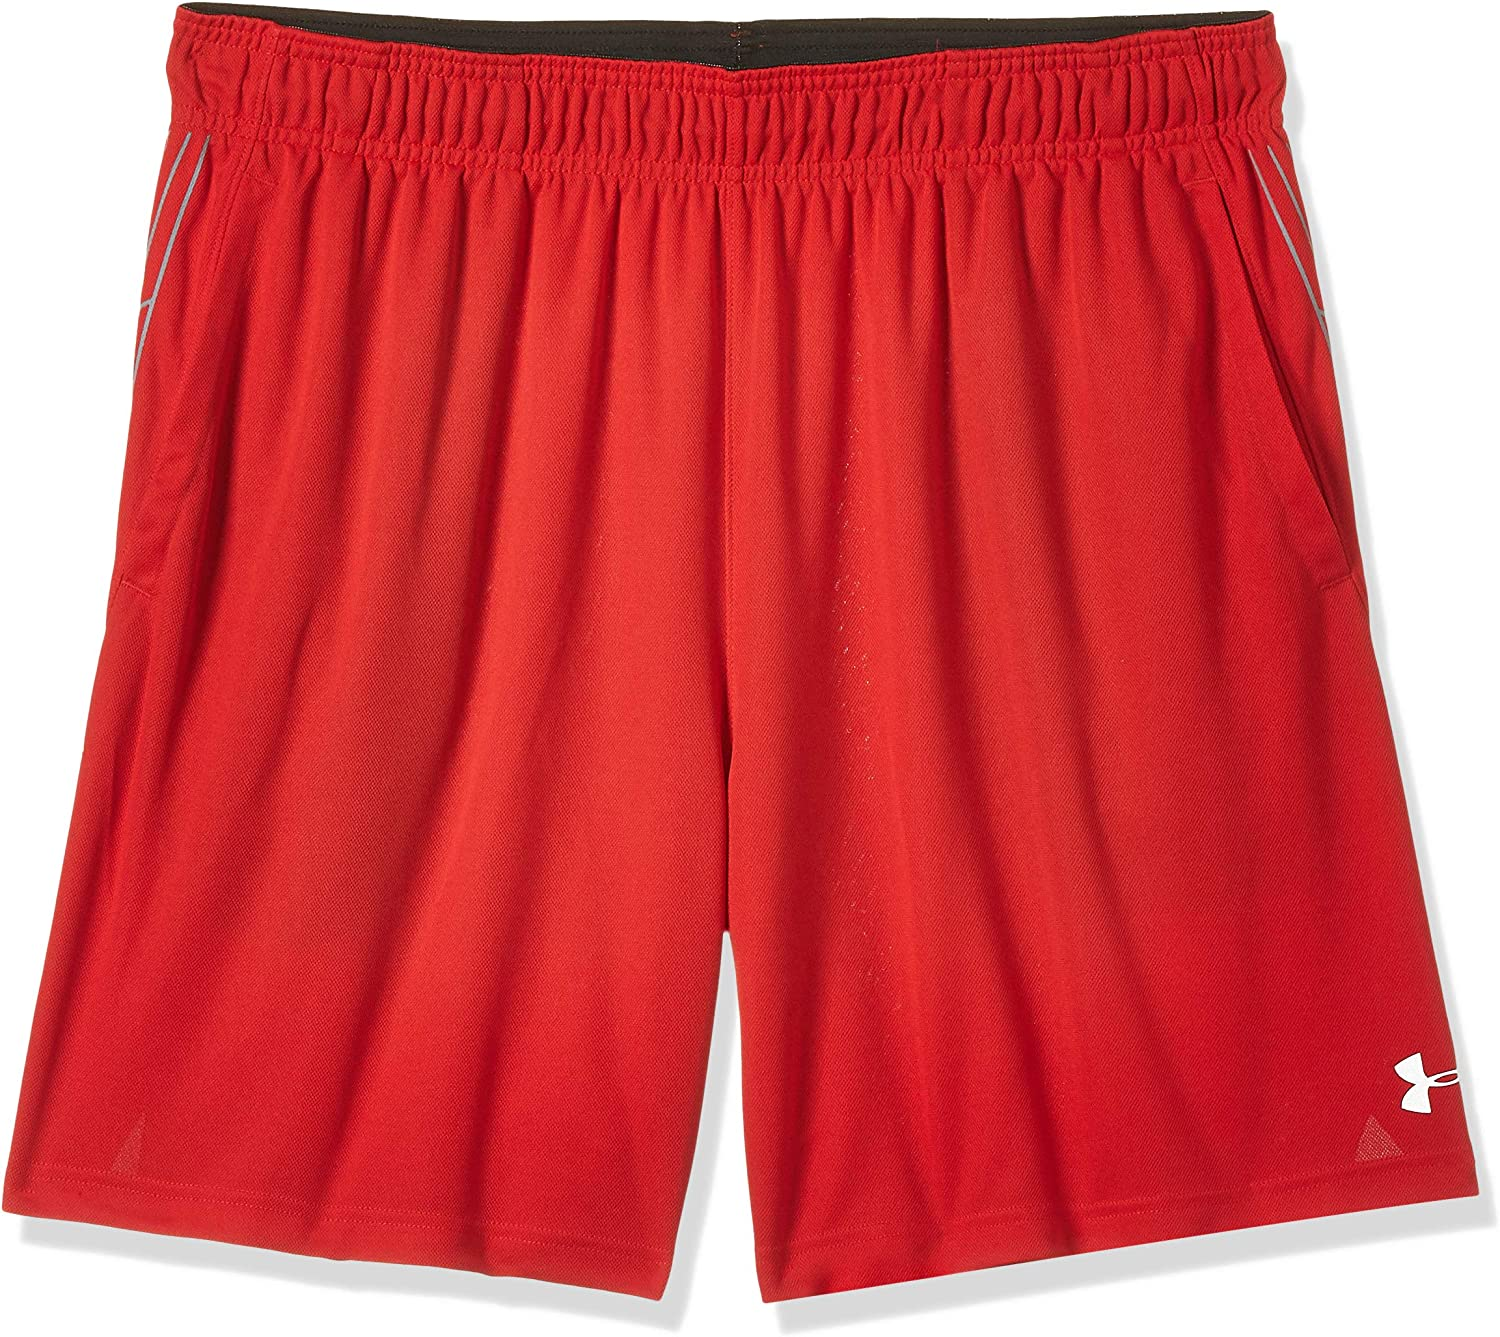 Under Armour Men's Select Rapid rise Shorts Basketball 7